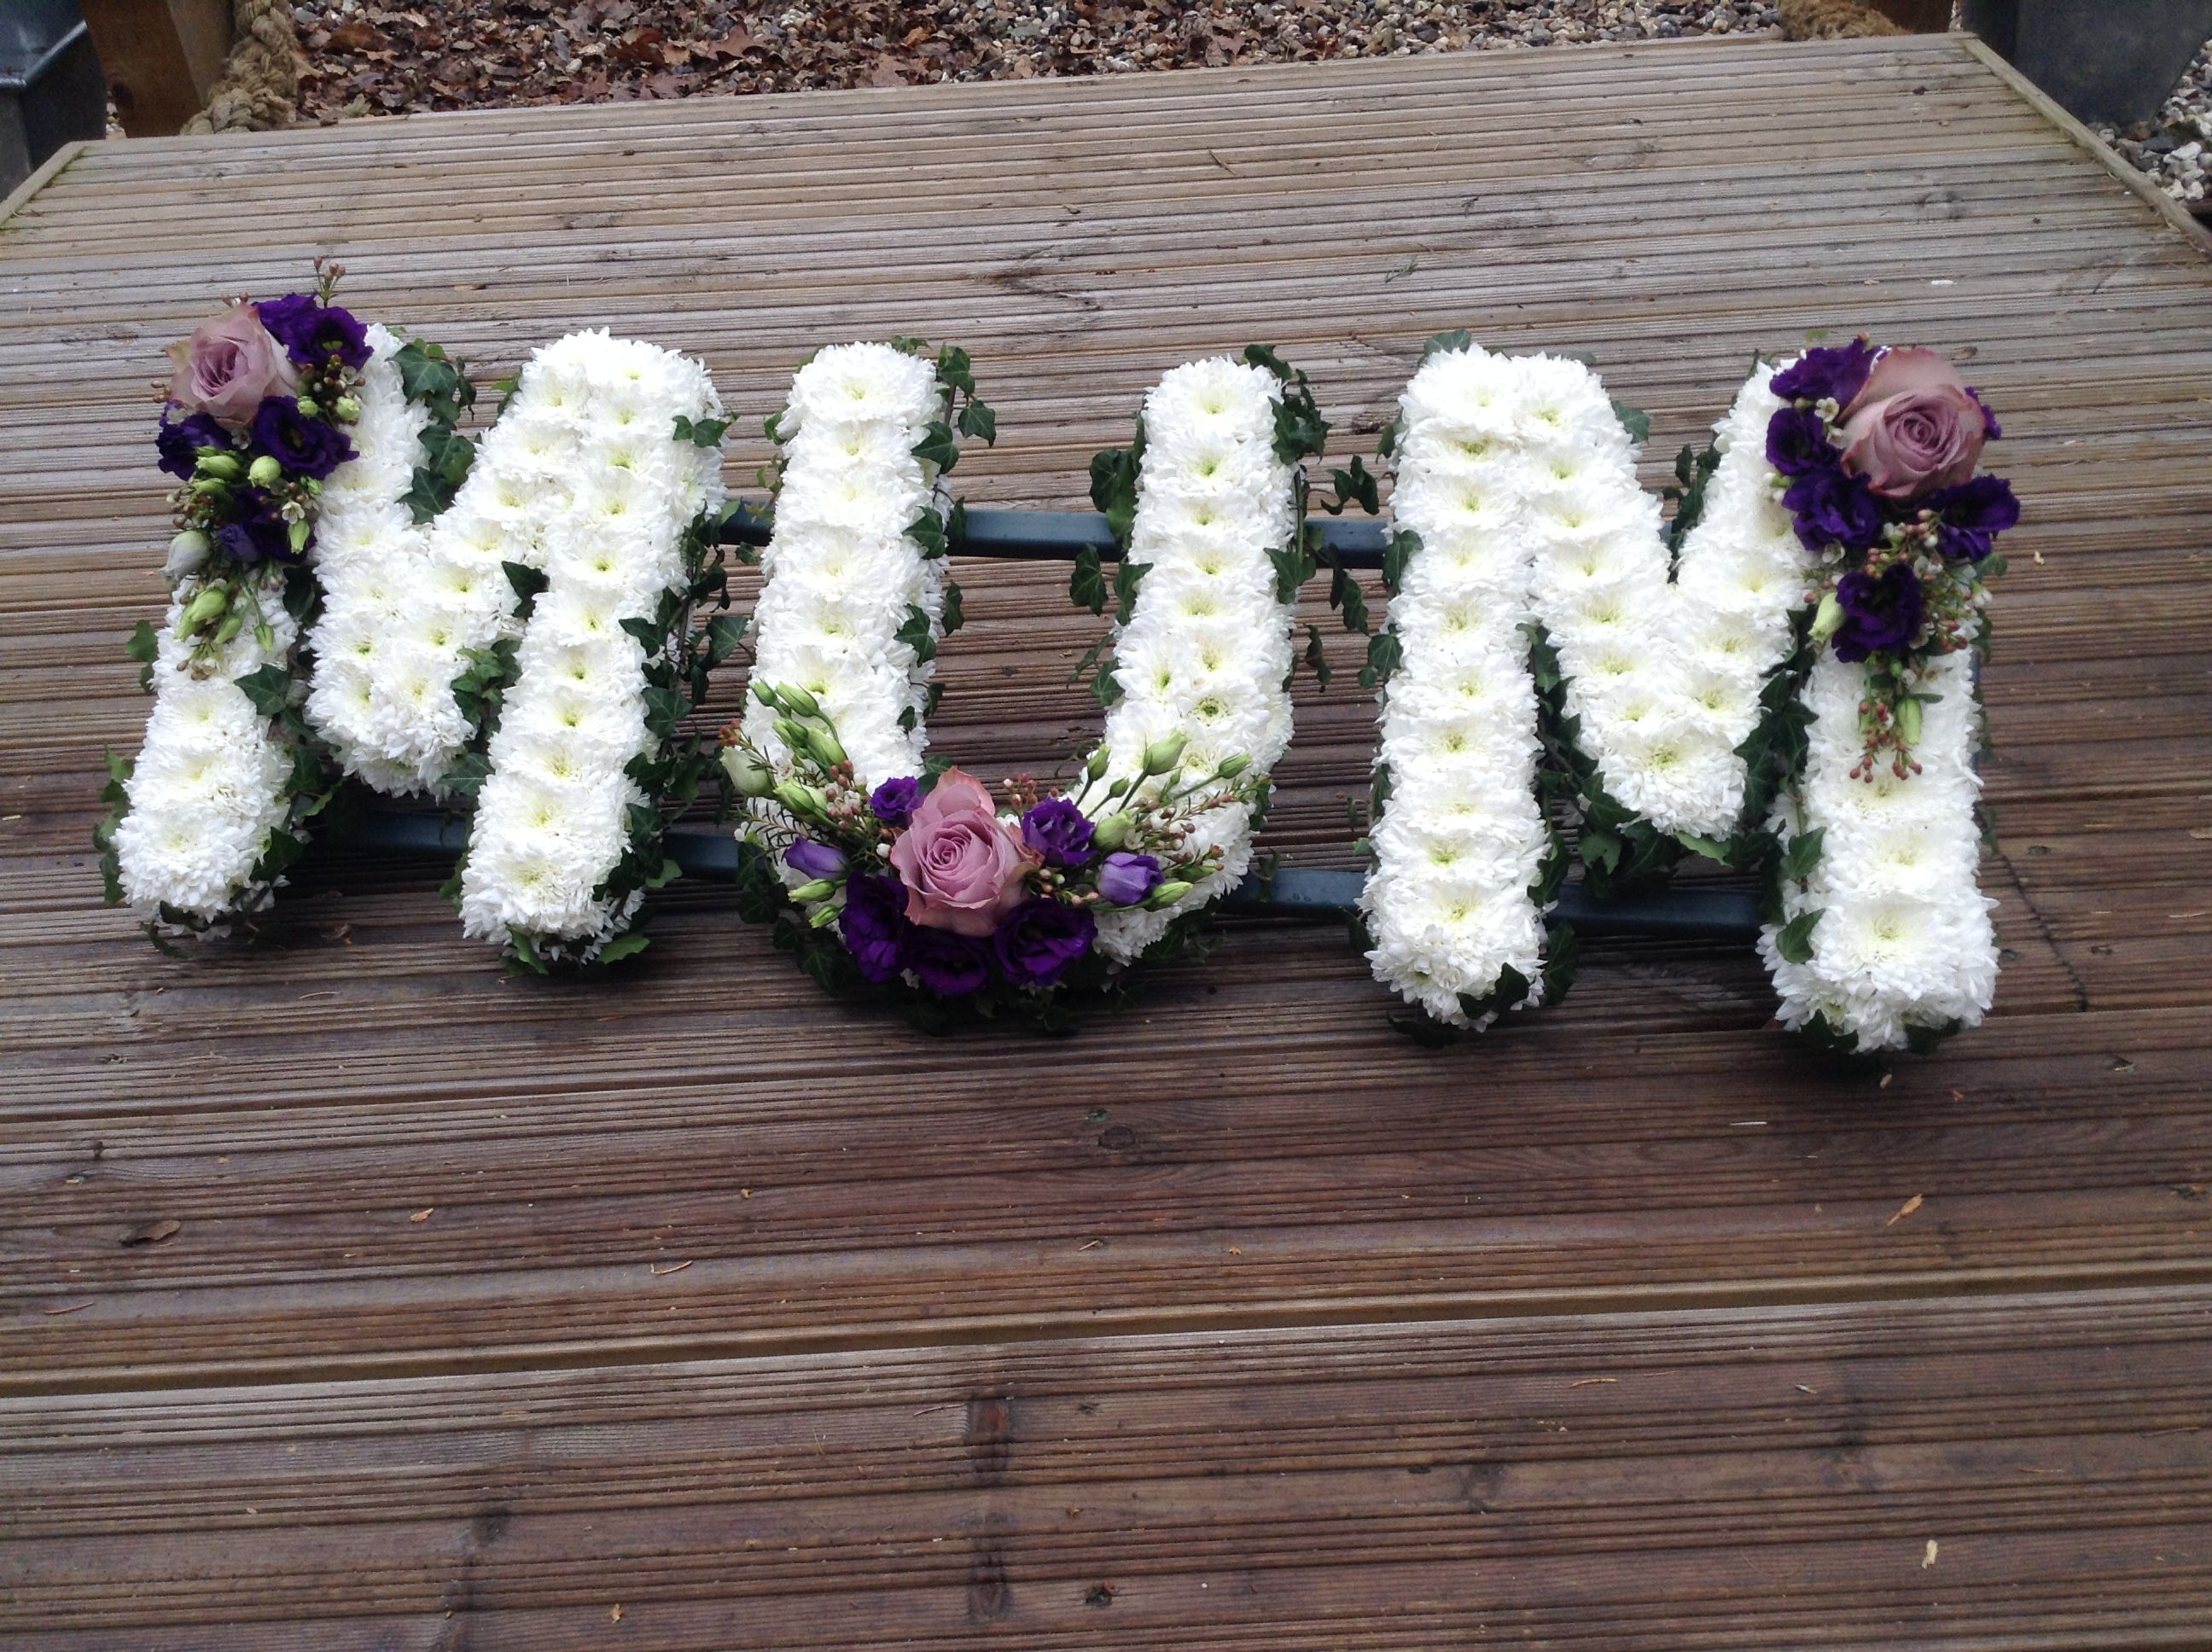 Funeral Flowers Mum Funeral Flower Letter Tribute With Ivy Edging